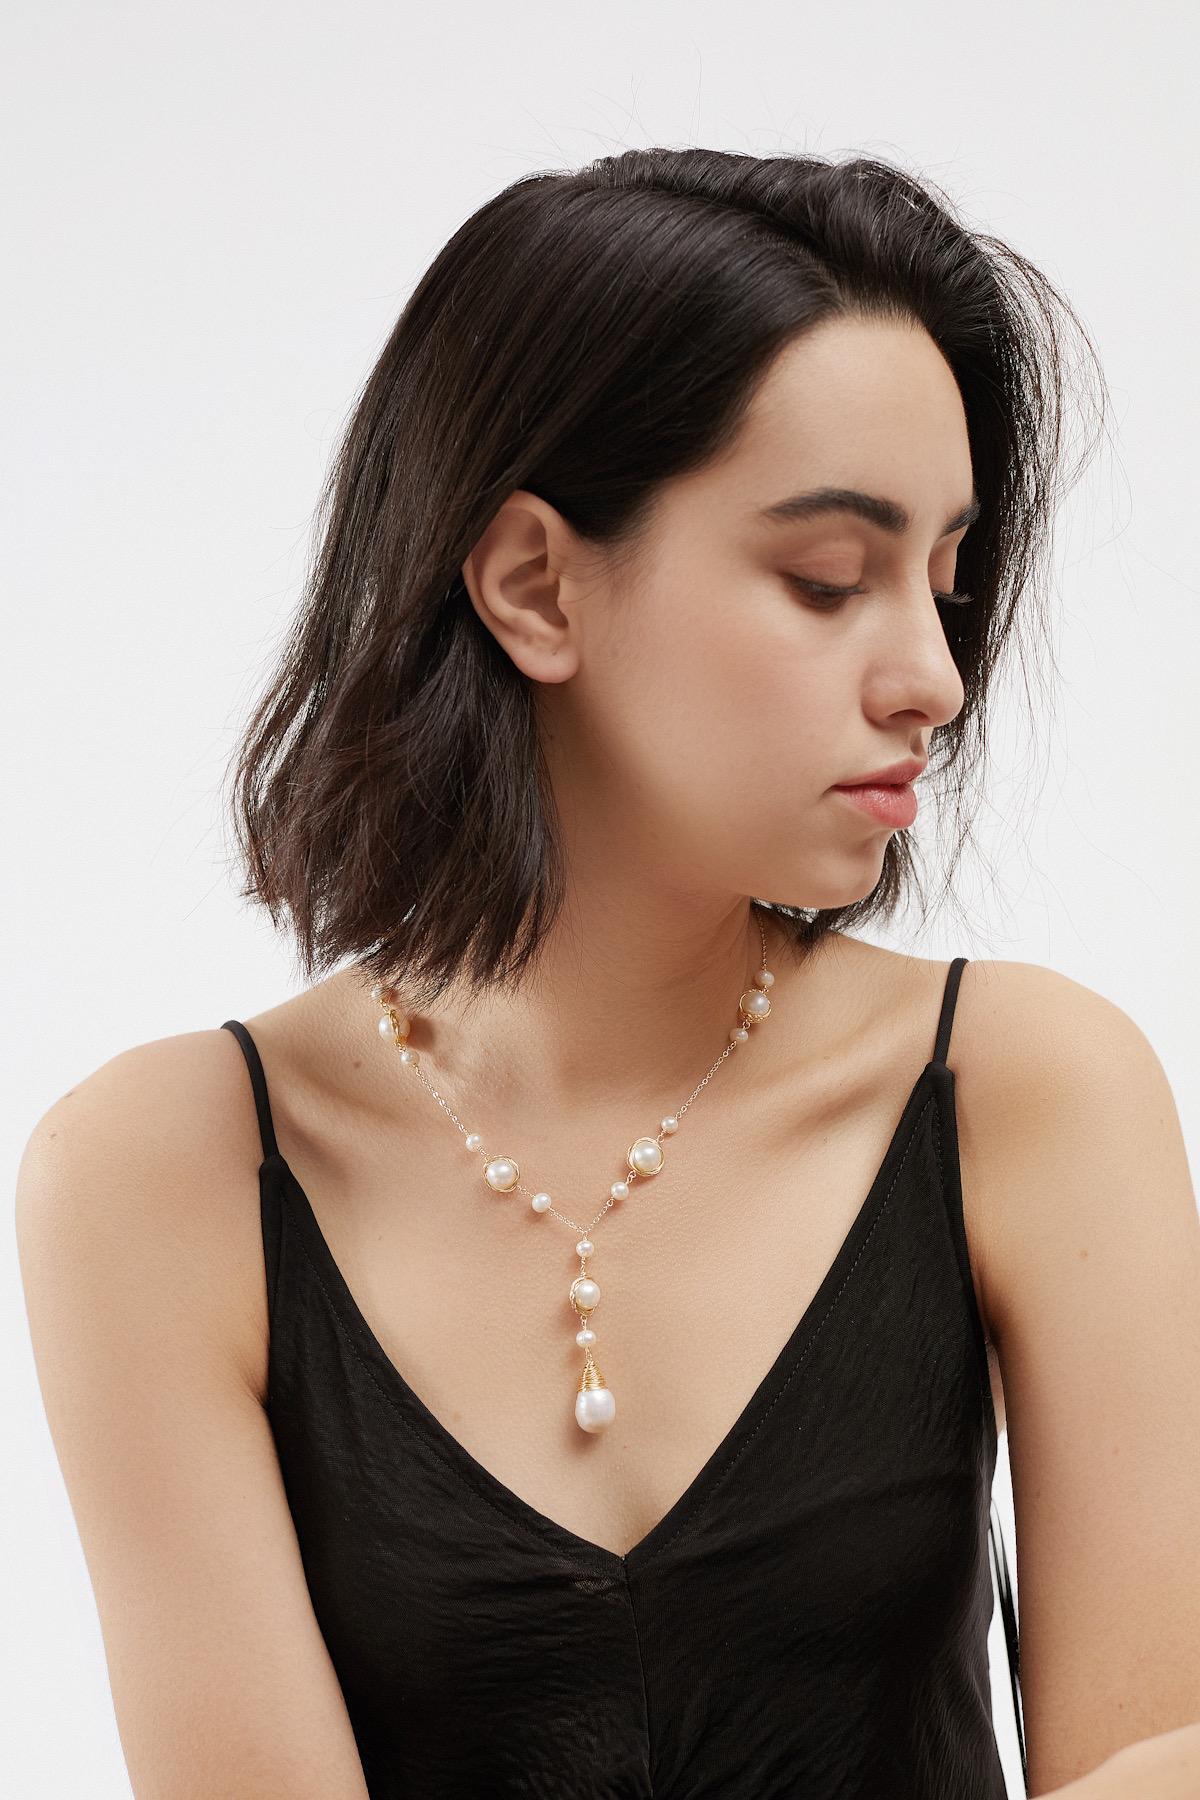 SKYE San Francisco Shop SF Chic Modern Elegant Classy Women Jewelry French Parisian Minimalist Aubrey 18K Gold Freshwater Pearl Necklace 9